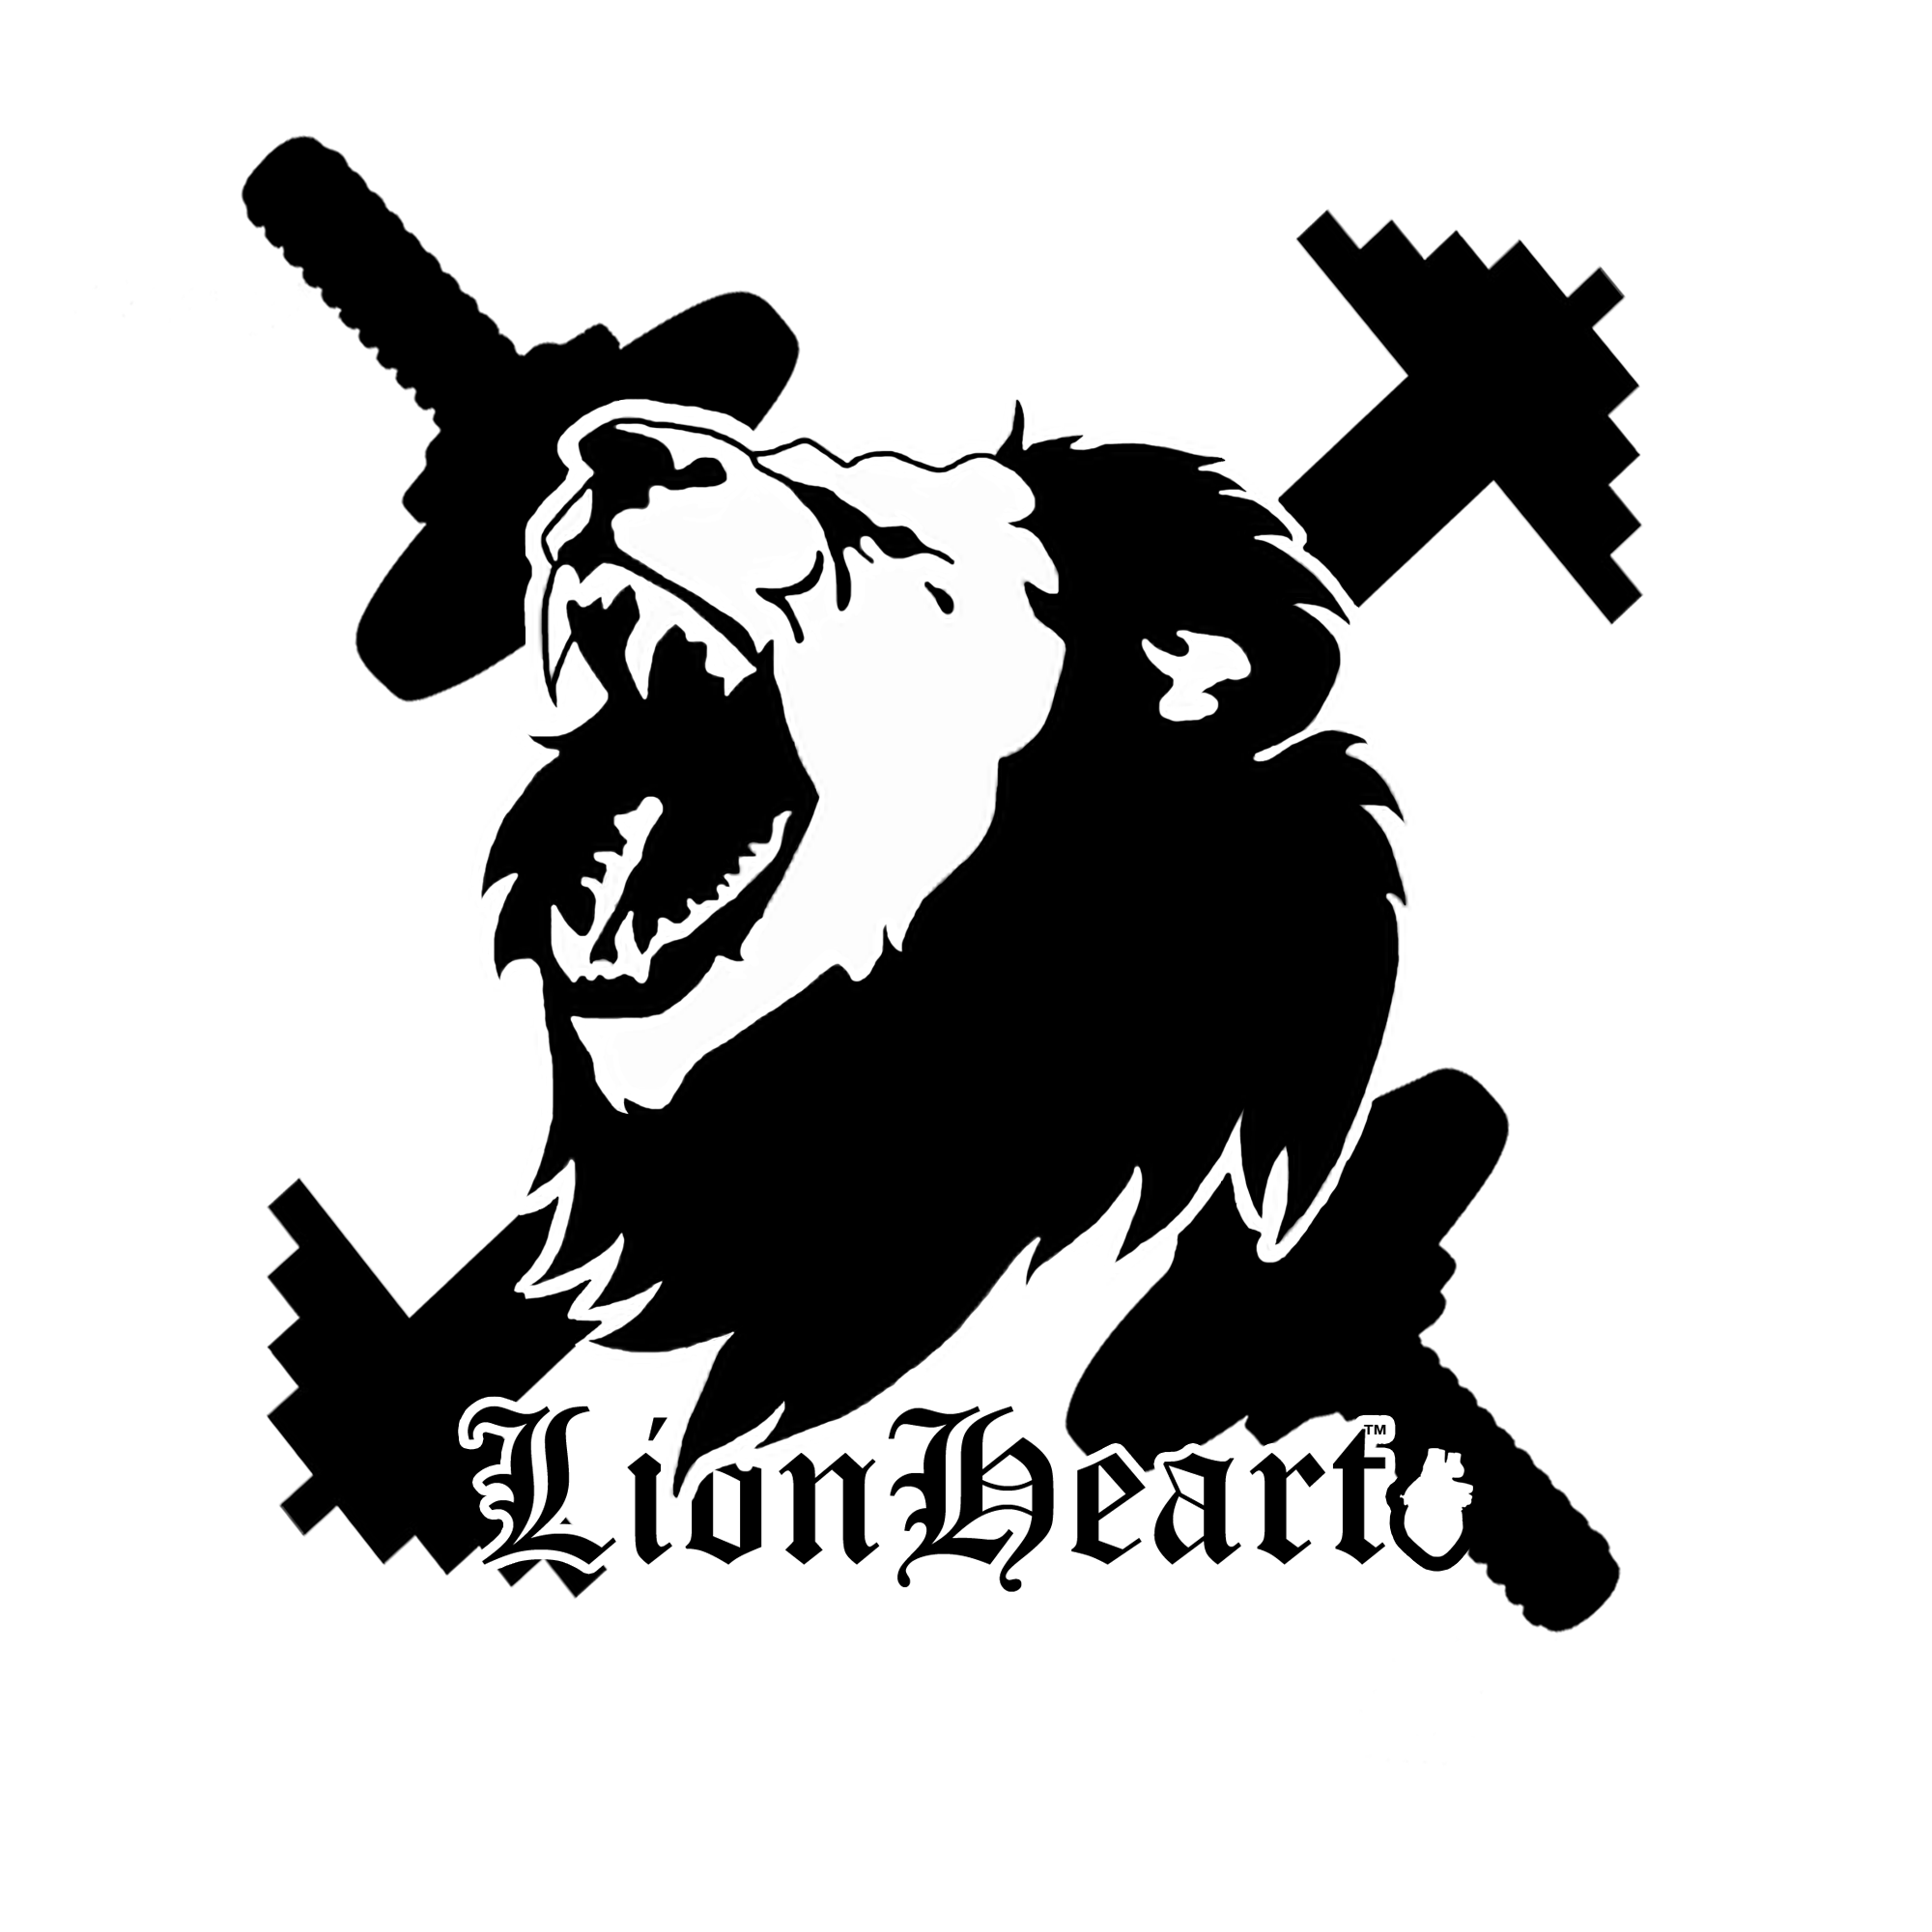 Project Lionheart, Co.